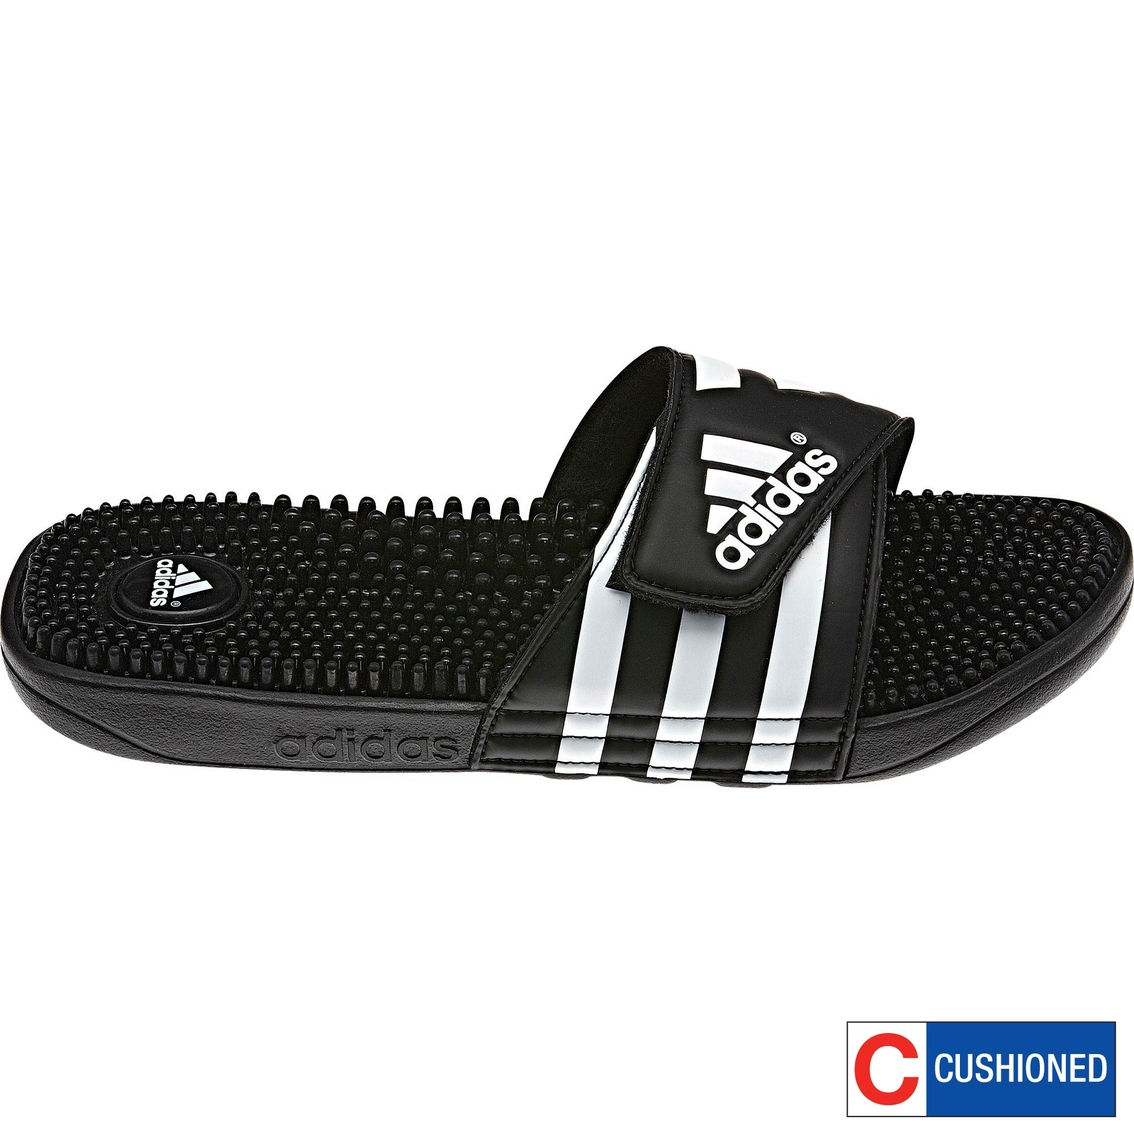 adidas slides review